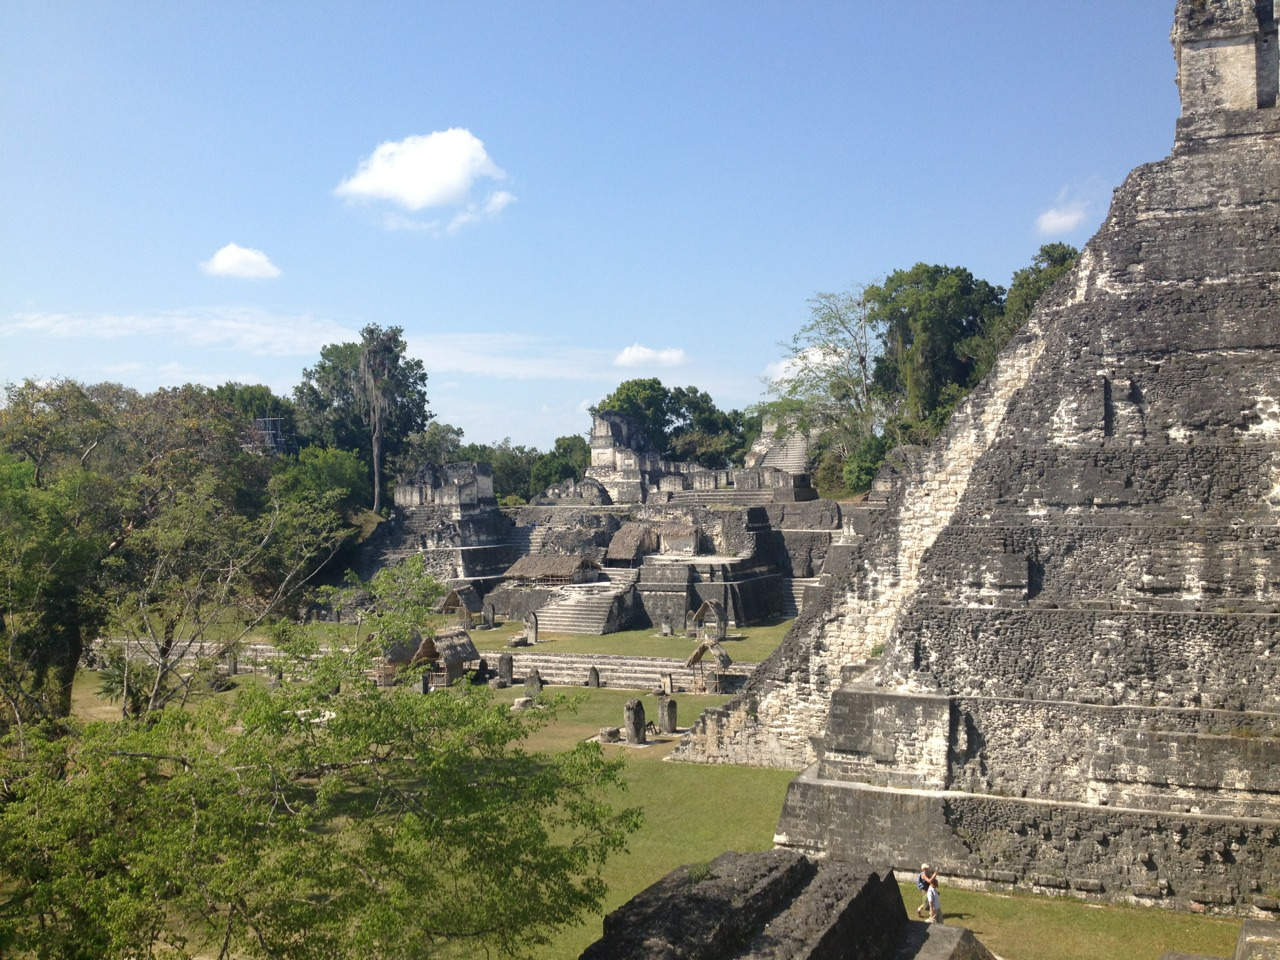 Tikal, Guatemala. Crossing the border from Belize was a total zoo. But after having to talk to 12 different border officers, paying at least half of them, and driving another hour and a half to Tikal it was totally worth it. Loving this vacation. We are so lucky.